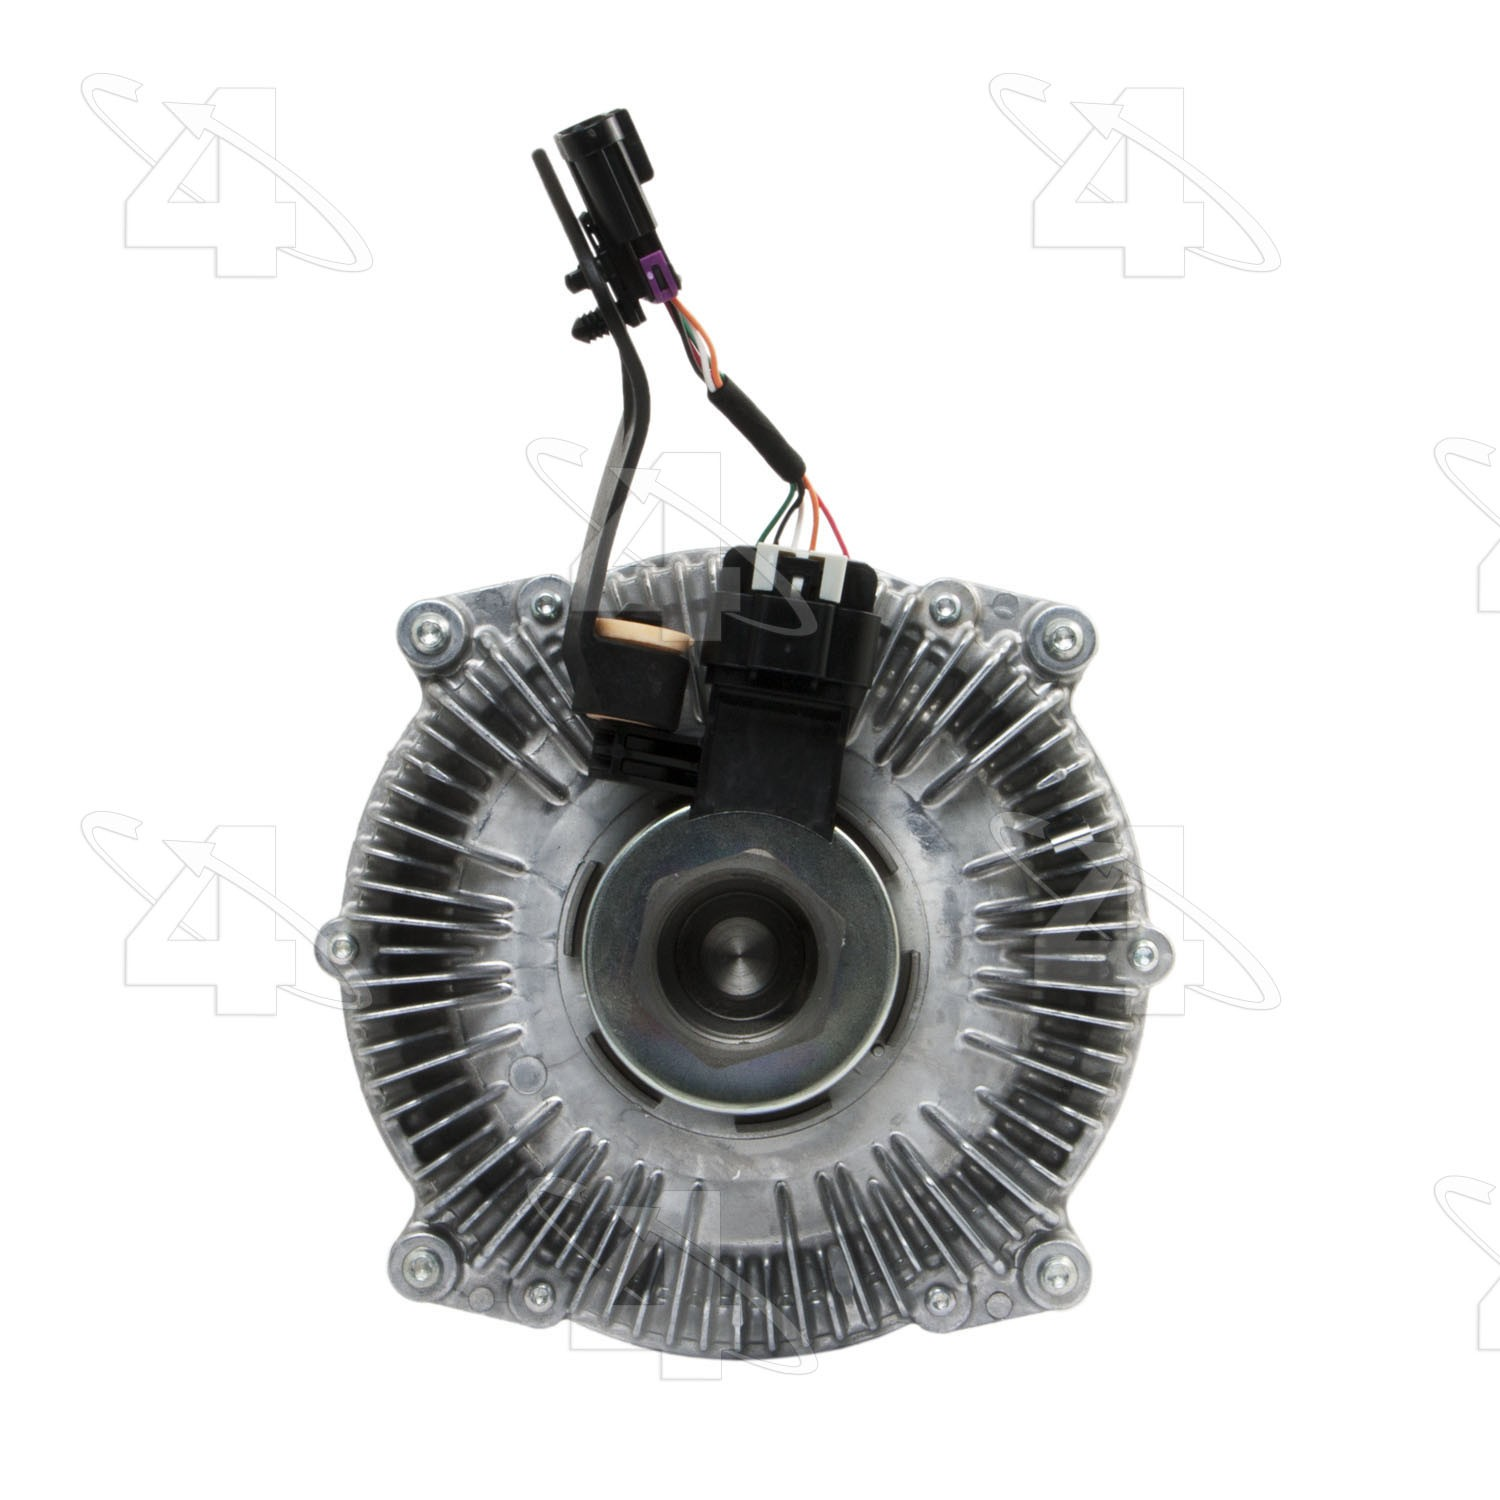 hight resolution of details about engine cooling fan clutch 3292 for 2013 2017 ram 2500 3500